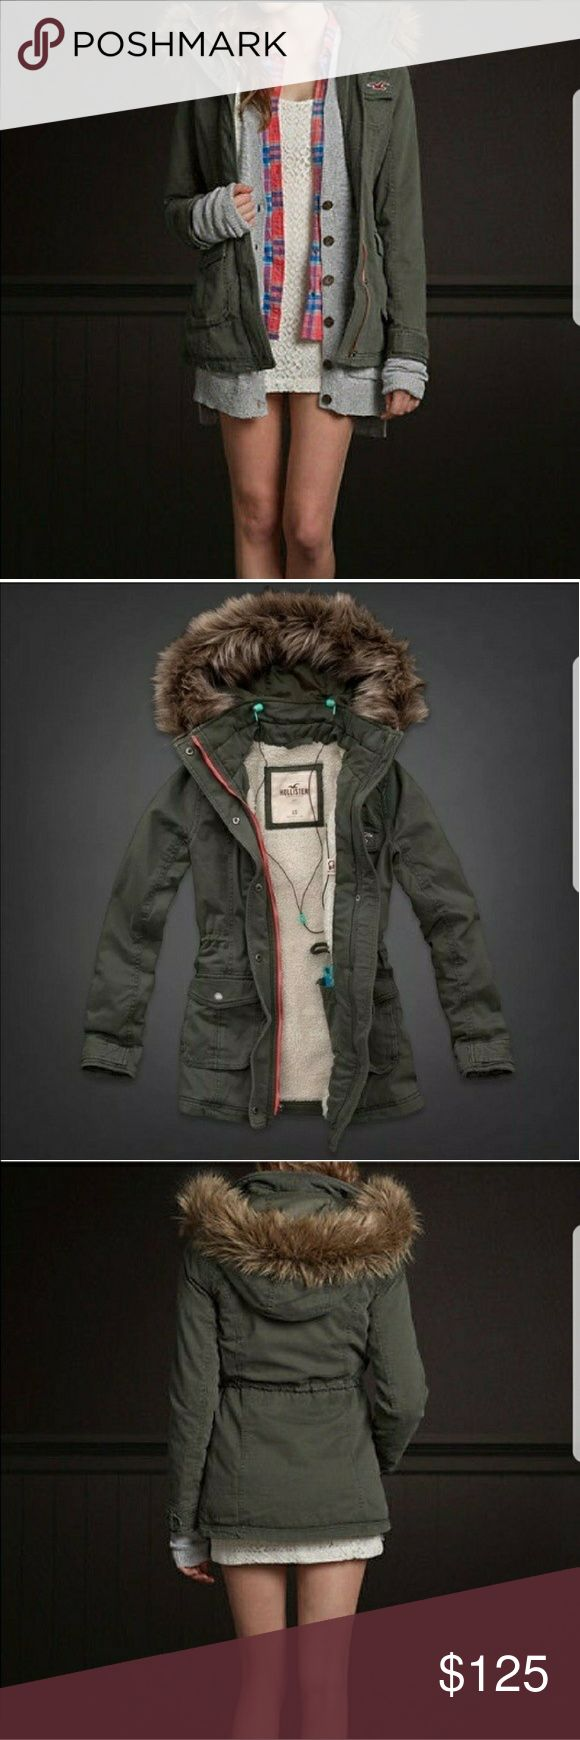 """New Hollister Faux Fur Sherpa Lined Jacket Bundle up during the colder weather with this faux fur jacket from Hollister by Abercrombie and Fitch. This coat has a faux fur hoodie and Sherpa lining inside which will keep you not only warm but stylish as well. Features: pockets, snap closure buttons, seagull embroidery, convenient tag to hold your earphones, inside pocket, and detachable faux fur. Material: 100% cotton. Rough Measurements: bust 34"""" waist 28"""", sleeve length 25.5"""", jacket length…"""